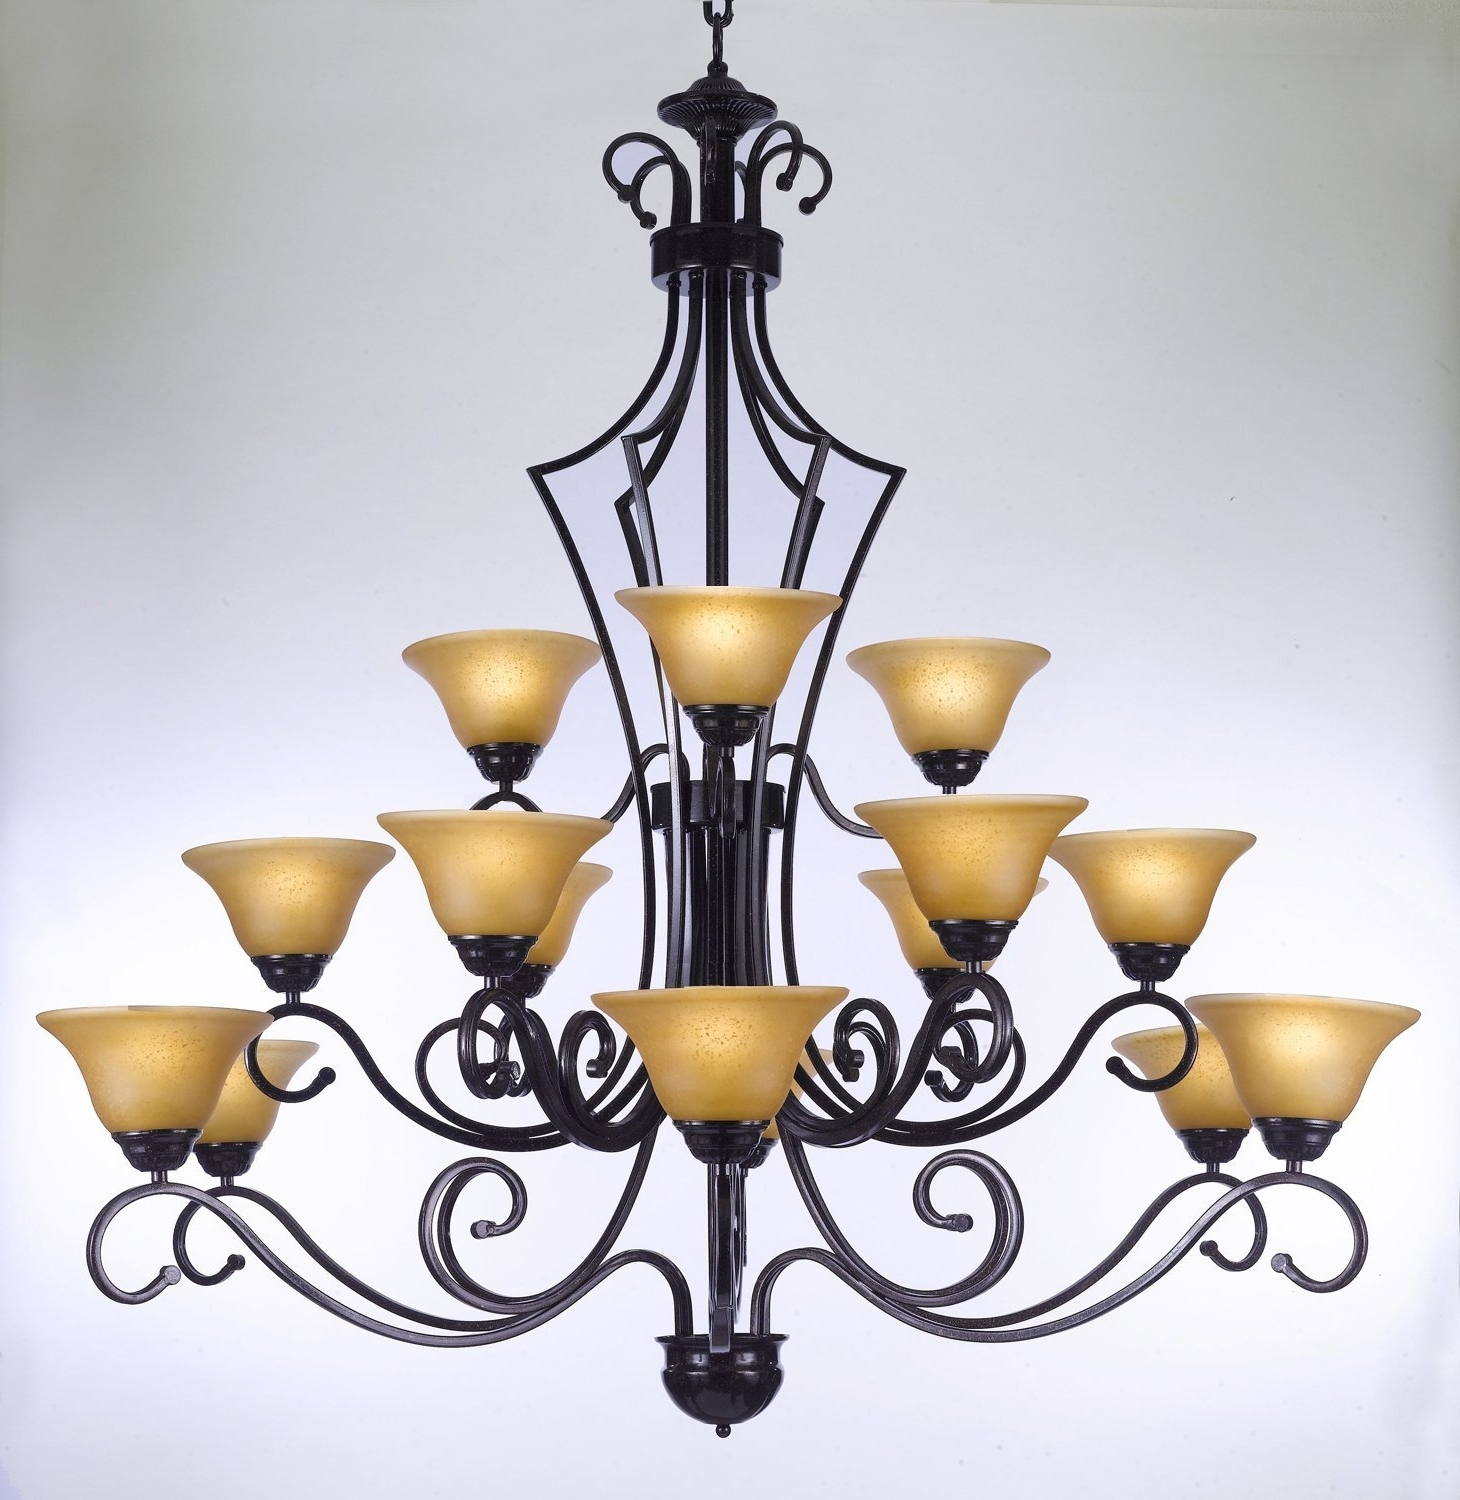 """Newest Wrought Iron Chandeliers Intended For Large Foyer Or Entryway Wrought Iron Chandelier H51"""" X W (View 2 of 15)"""